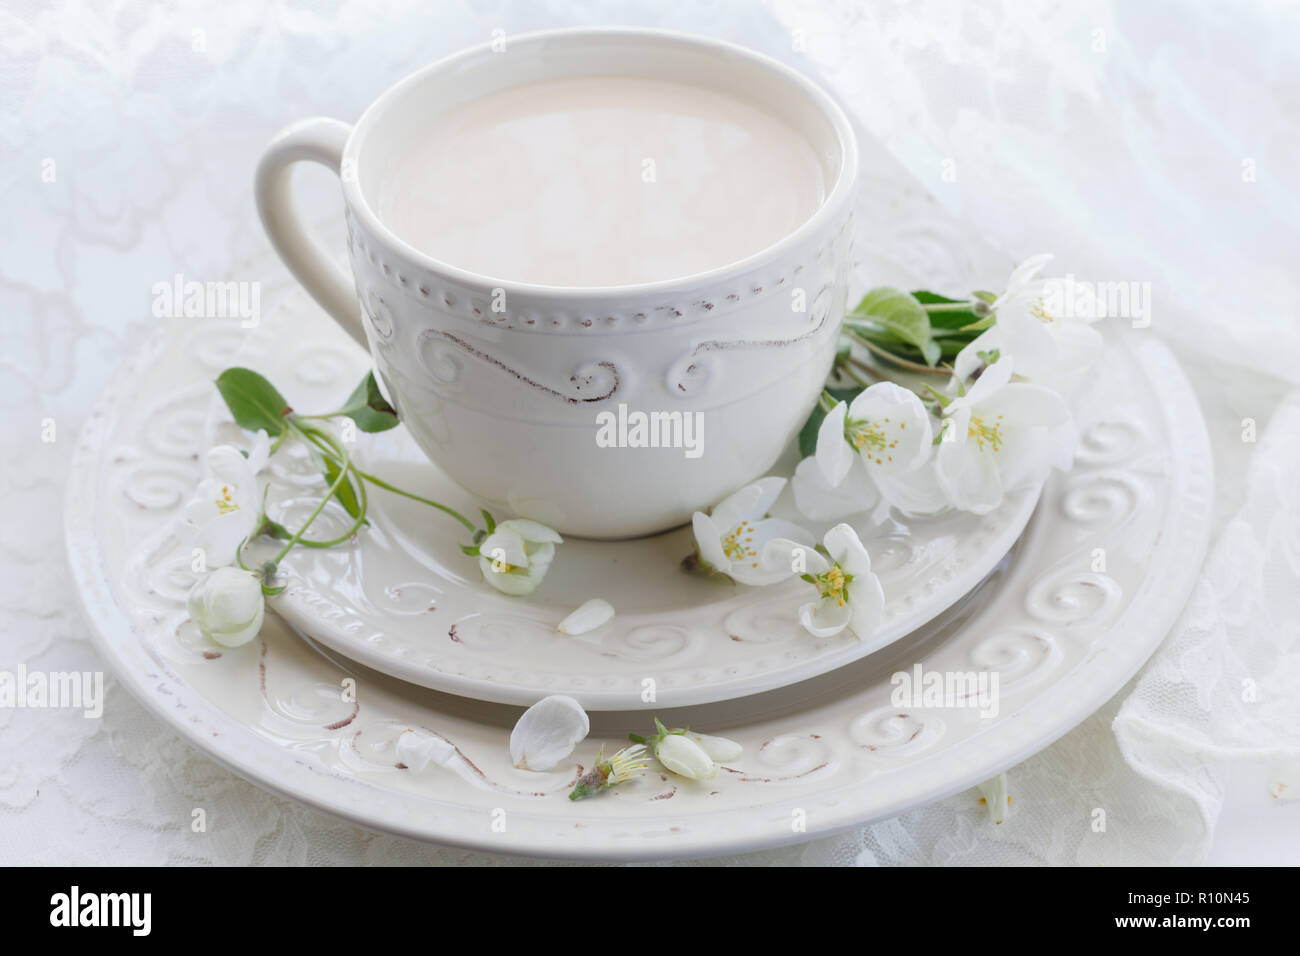 Masala tea chai latte homemade traditional Indian sweet milk with spices beverage in porcelain cup on wooden table background Stock Photo